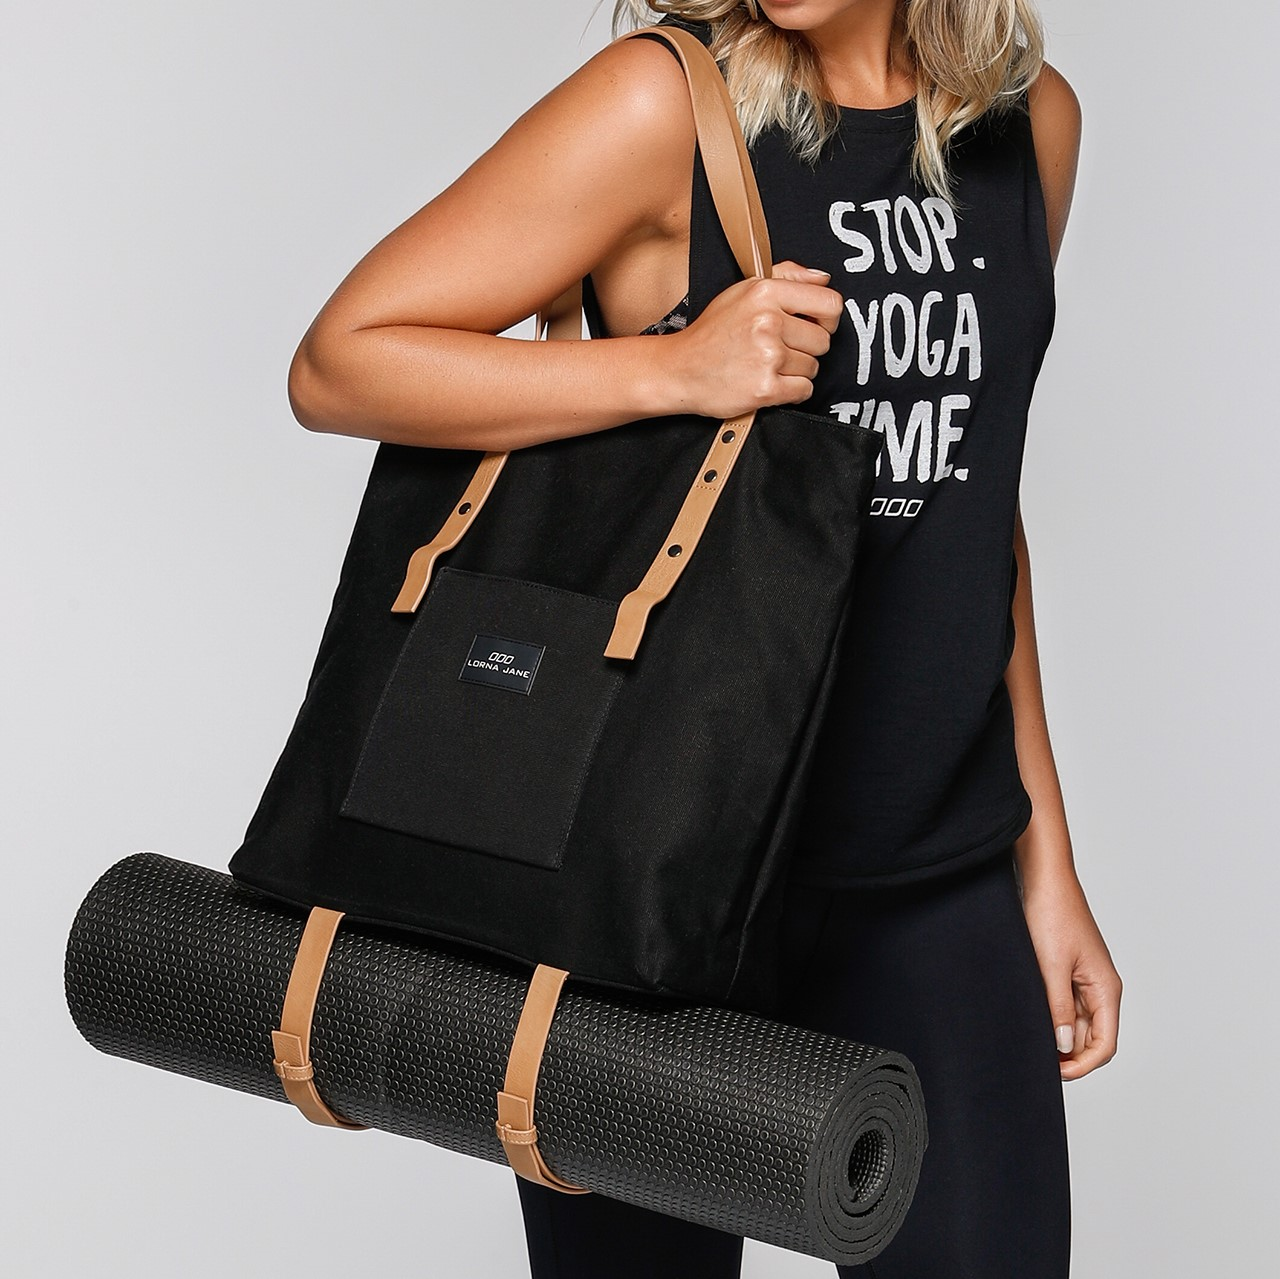 Lorna Jane LJ Yoga Bag